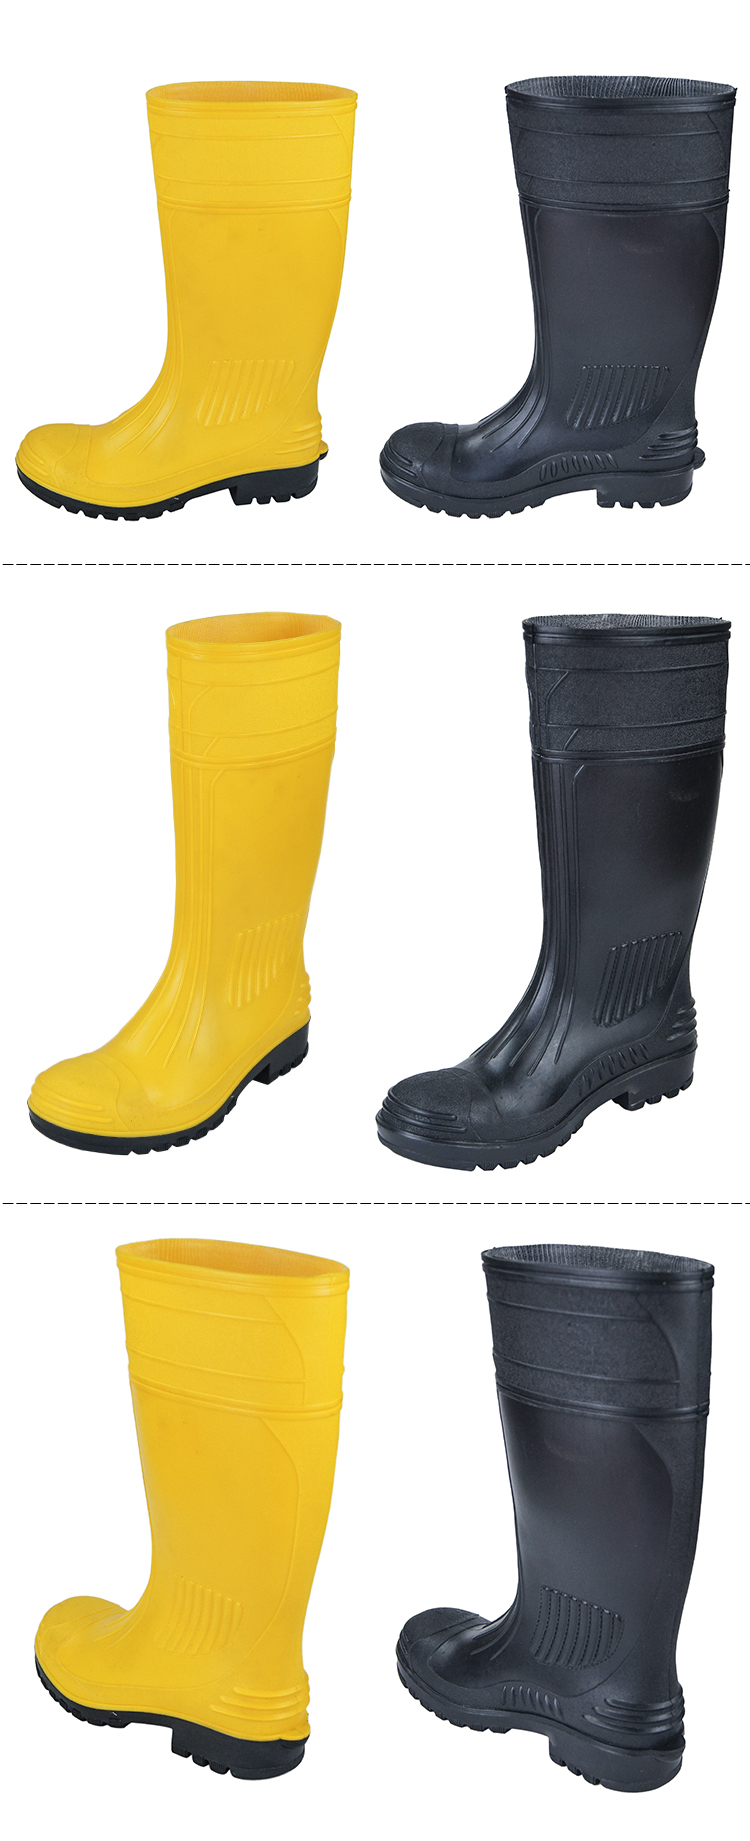 Anti-acid Safety Rain Boots